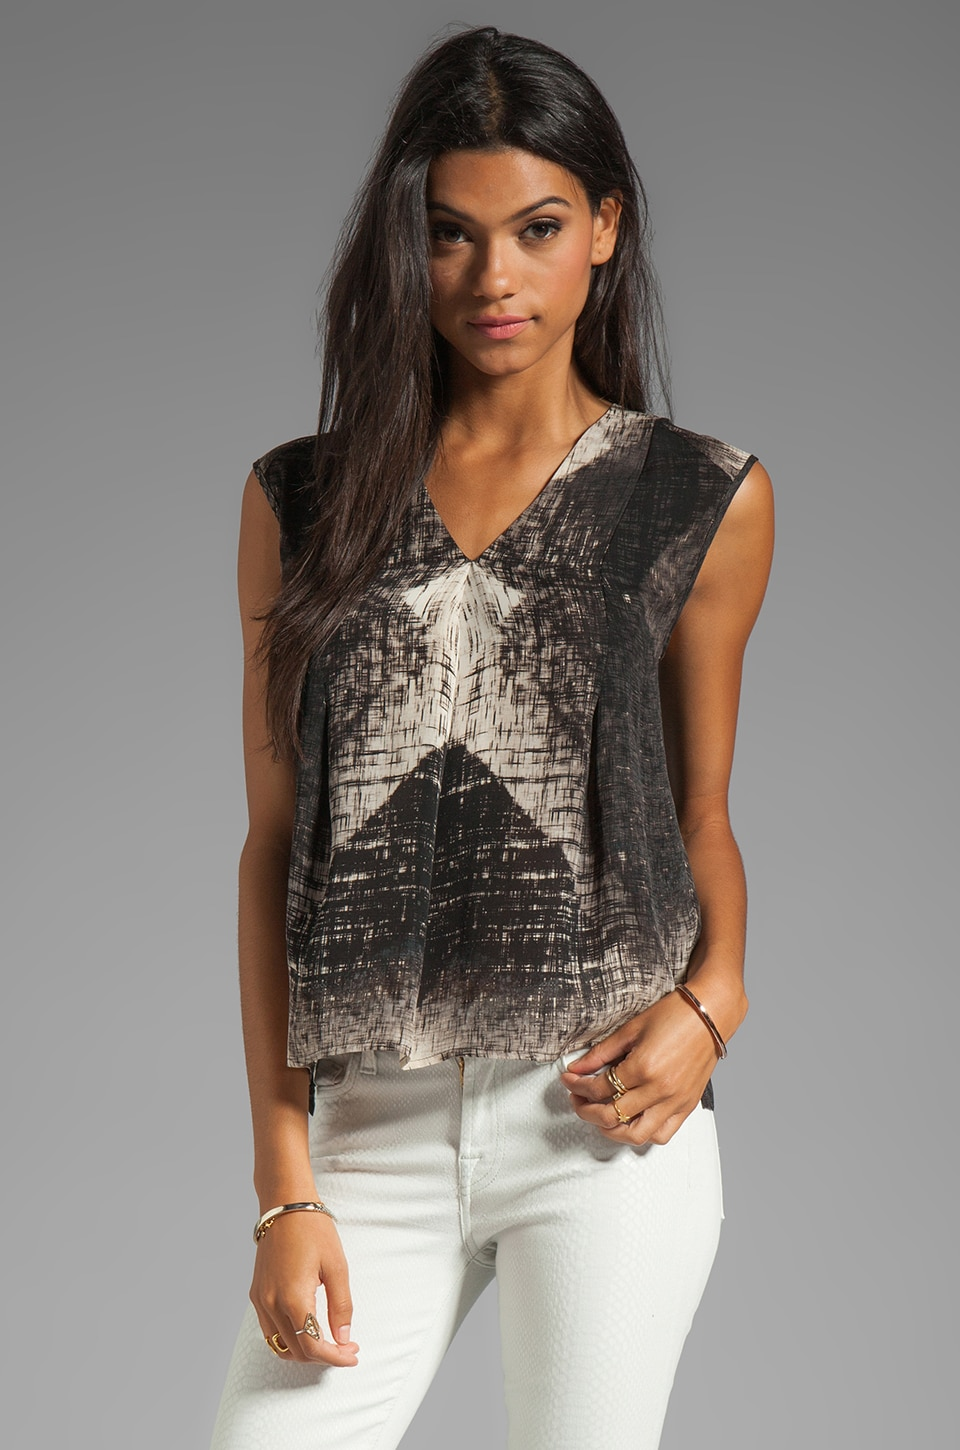 Halston Heritage V Neck Drapey Top in Black Reflection Diamond Print